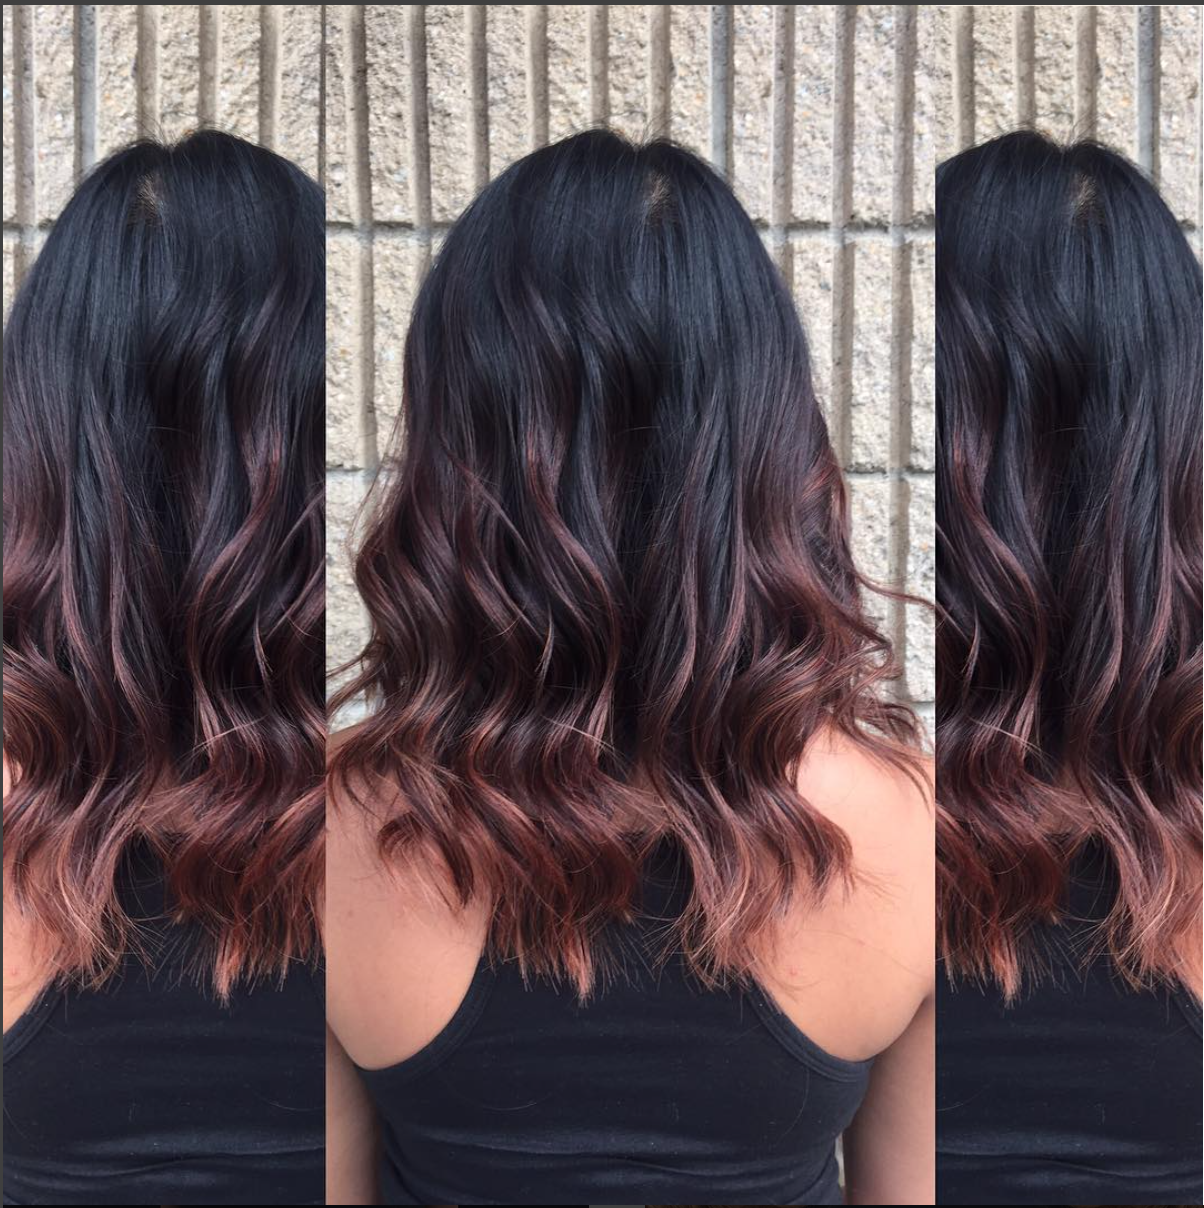 Custom Cut & Color